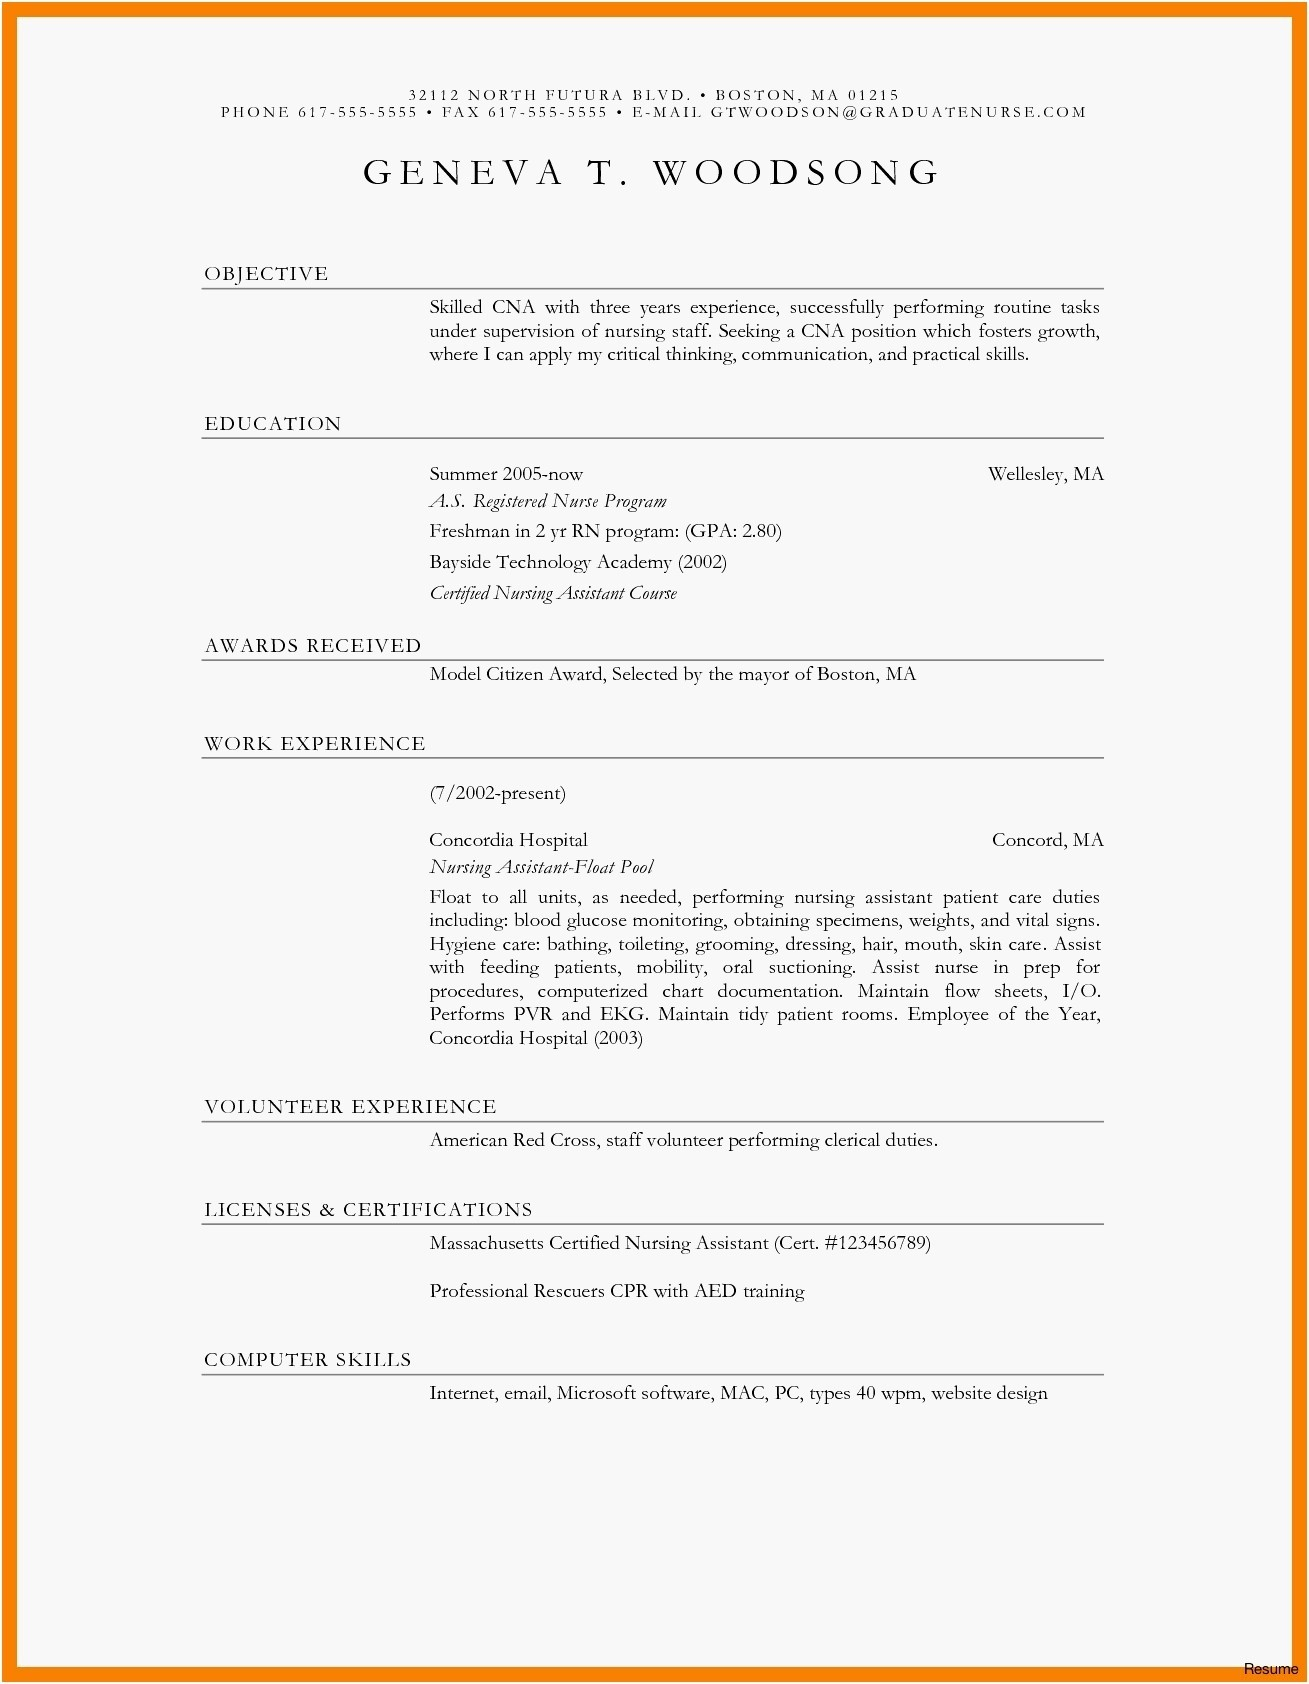 cover letter template pdf free example-Resume Cover Letter Template Free 22 Luxury Free Resume Cover Letter 1-o